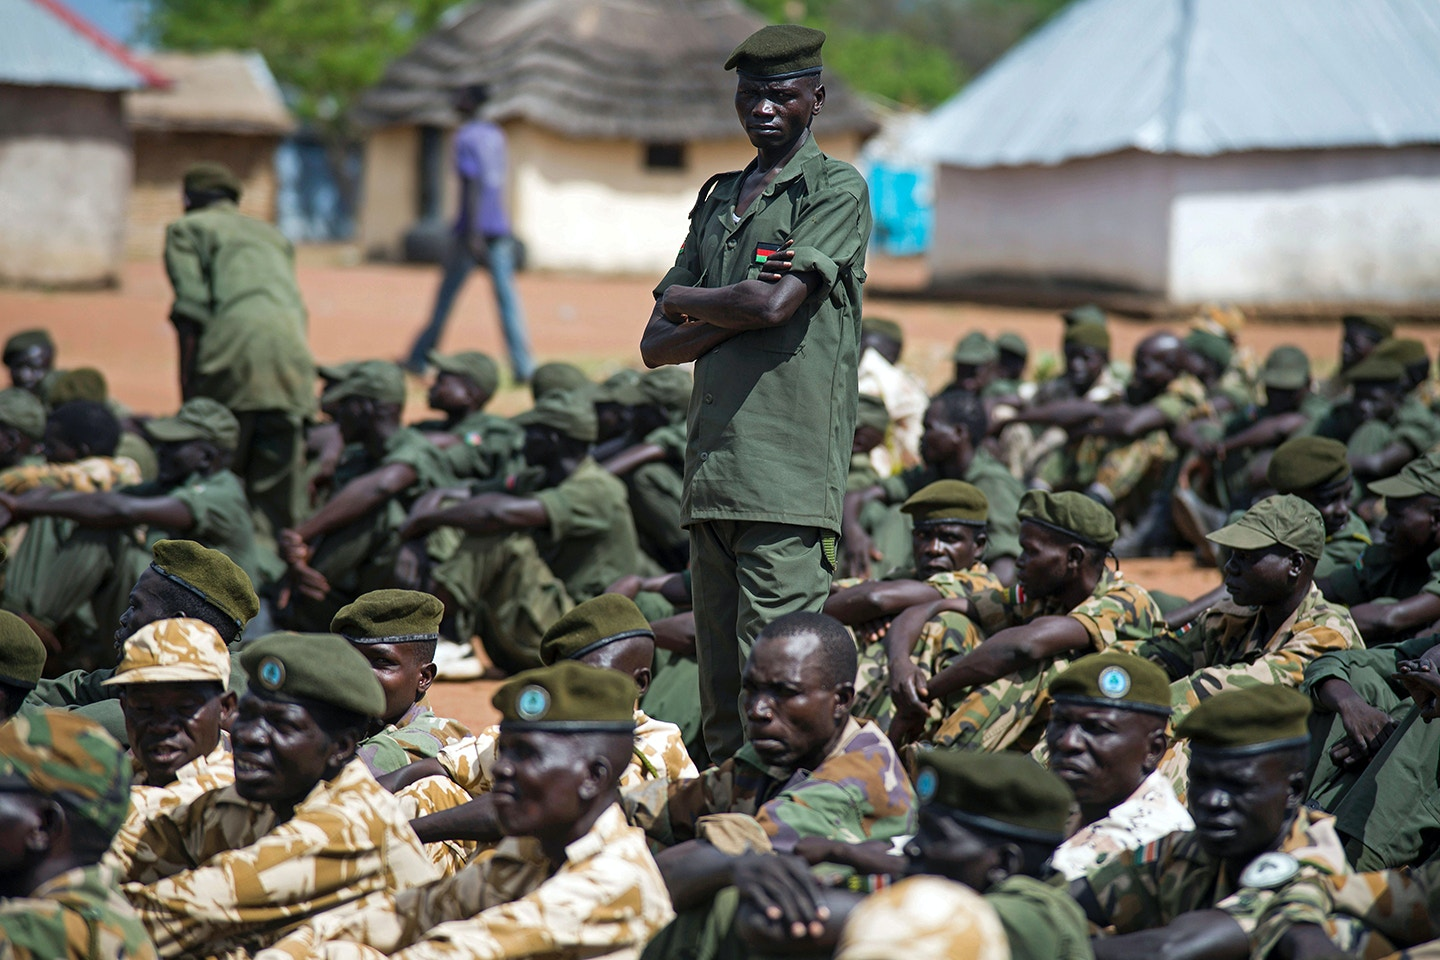 Troops of the South Sudanese army (SPLA) wait for the arrival of members of the Ceasefire and Transitional Security Arrangements Monitoring Mechanism (CTSAMM) at the Pillbam military base in Juba on April 16, 2016.<br /> The SPLA permitted the CTSAMM to visit their military sites and verify whether or not the capital Juba has been demilitarized as required by the August 2015 peace agreement which President Salva Kiir's government signed with the armed opposition faction led by First Vice President designate Riek Machar. CTSAMM is responsible for monitoring compliance and reporting directly to the Joint Monitoring and Evaluation Commission (JMEC) on the progress of the implementation of the Permanent Ceasefire and Transitional Security Arrangements.  / AFP / ALBERT GONZALEZ FARRAN        (Photo credit should read ALBERT GONZALEZ FARRAN/AFP/Getty Images)